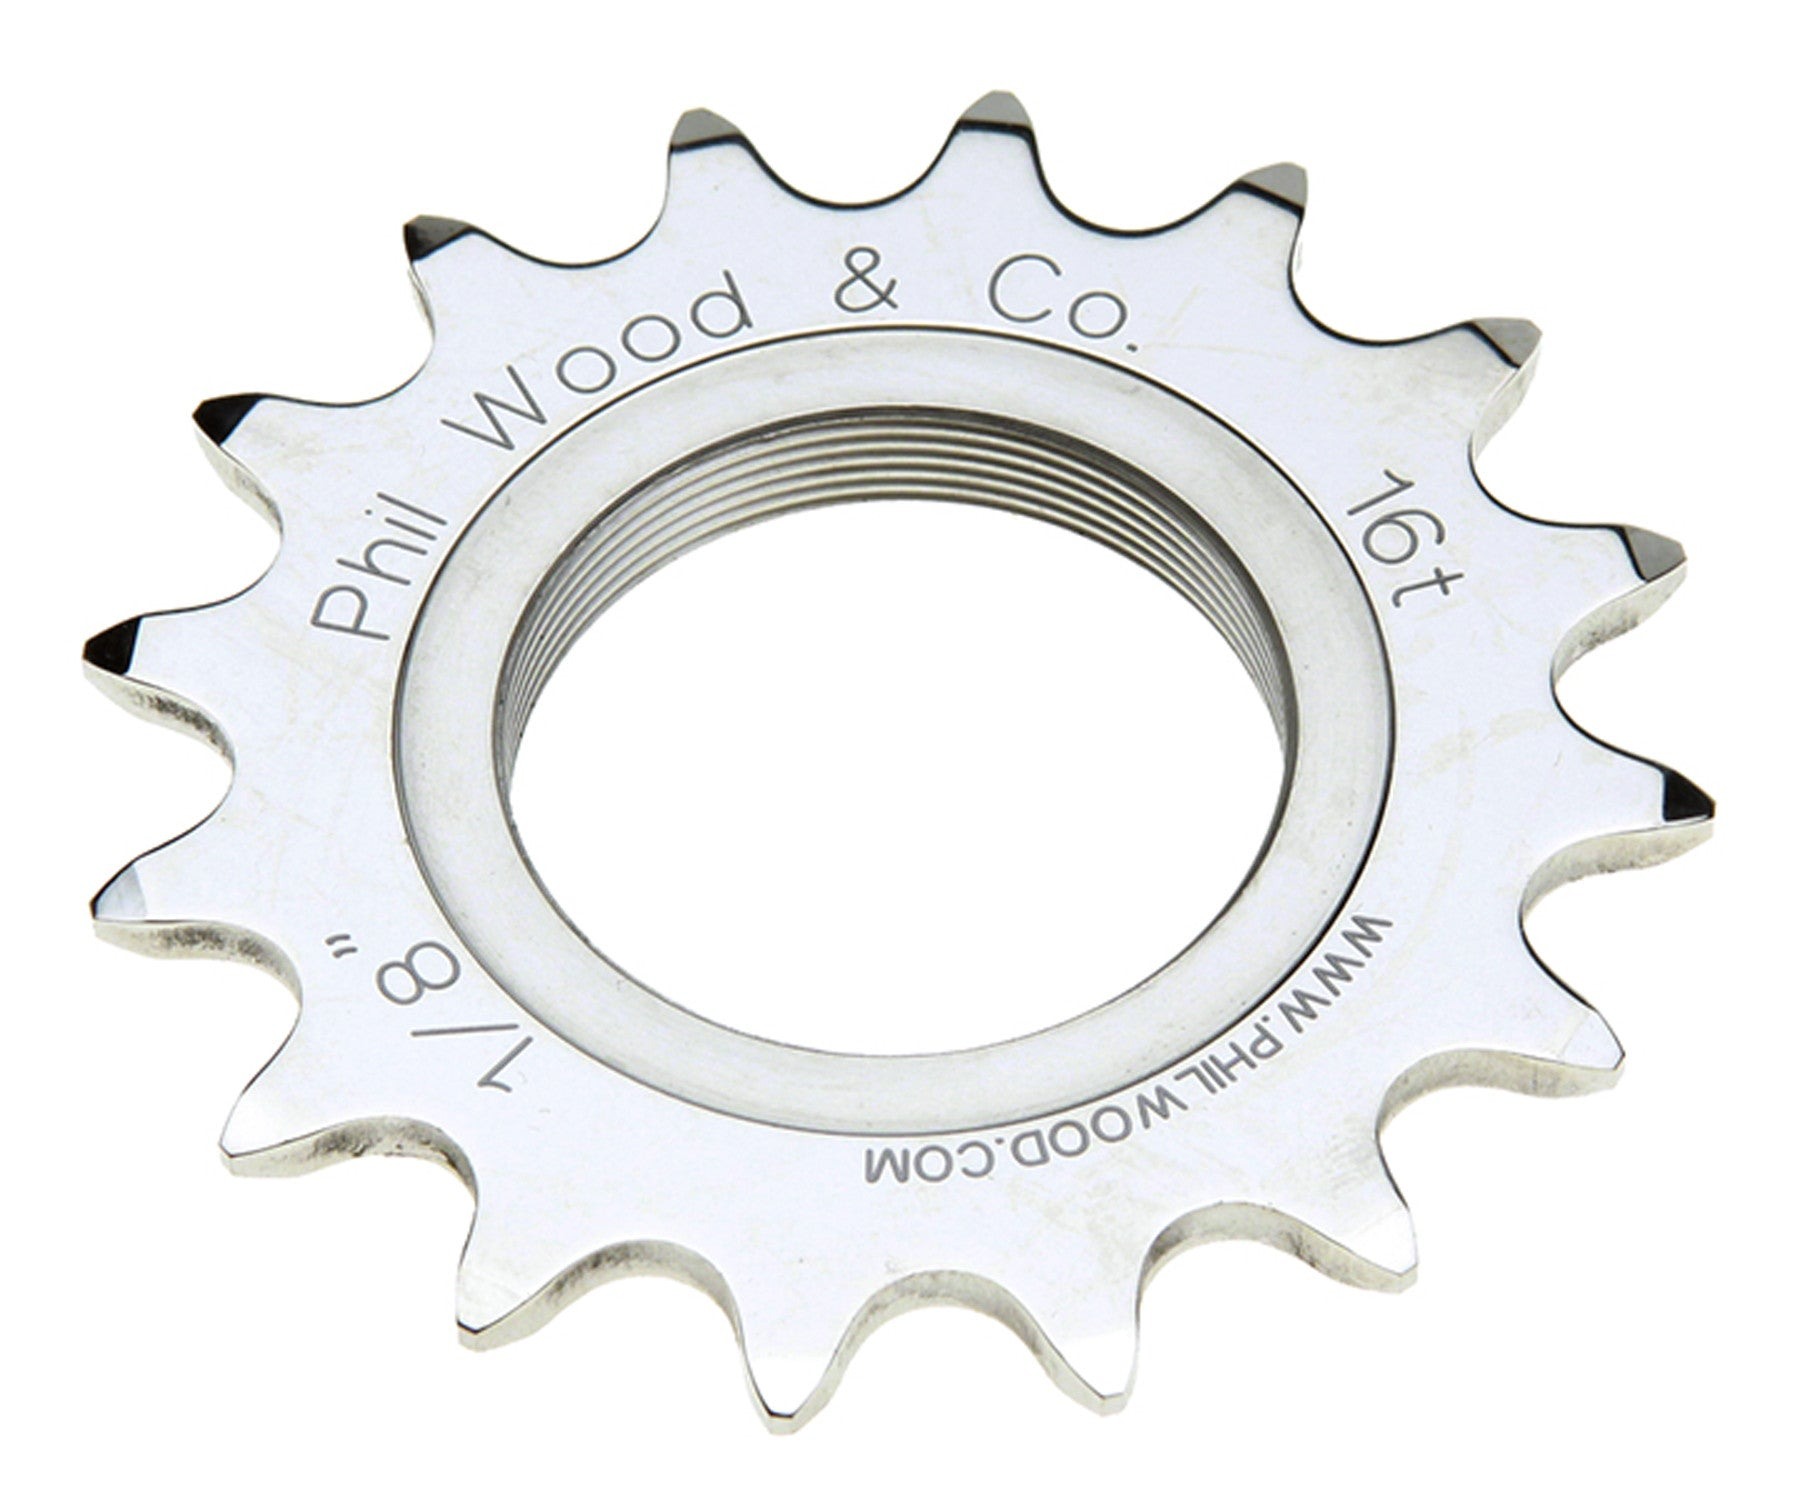 Phil Wood track cog - Retrogression